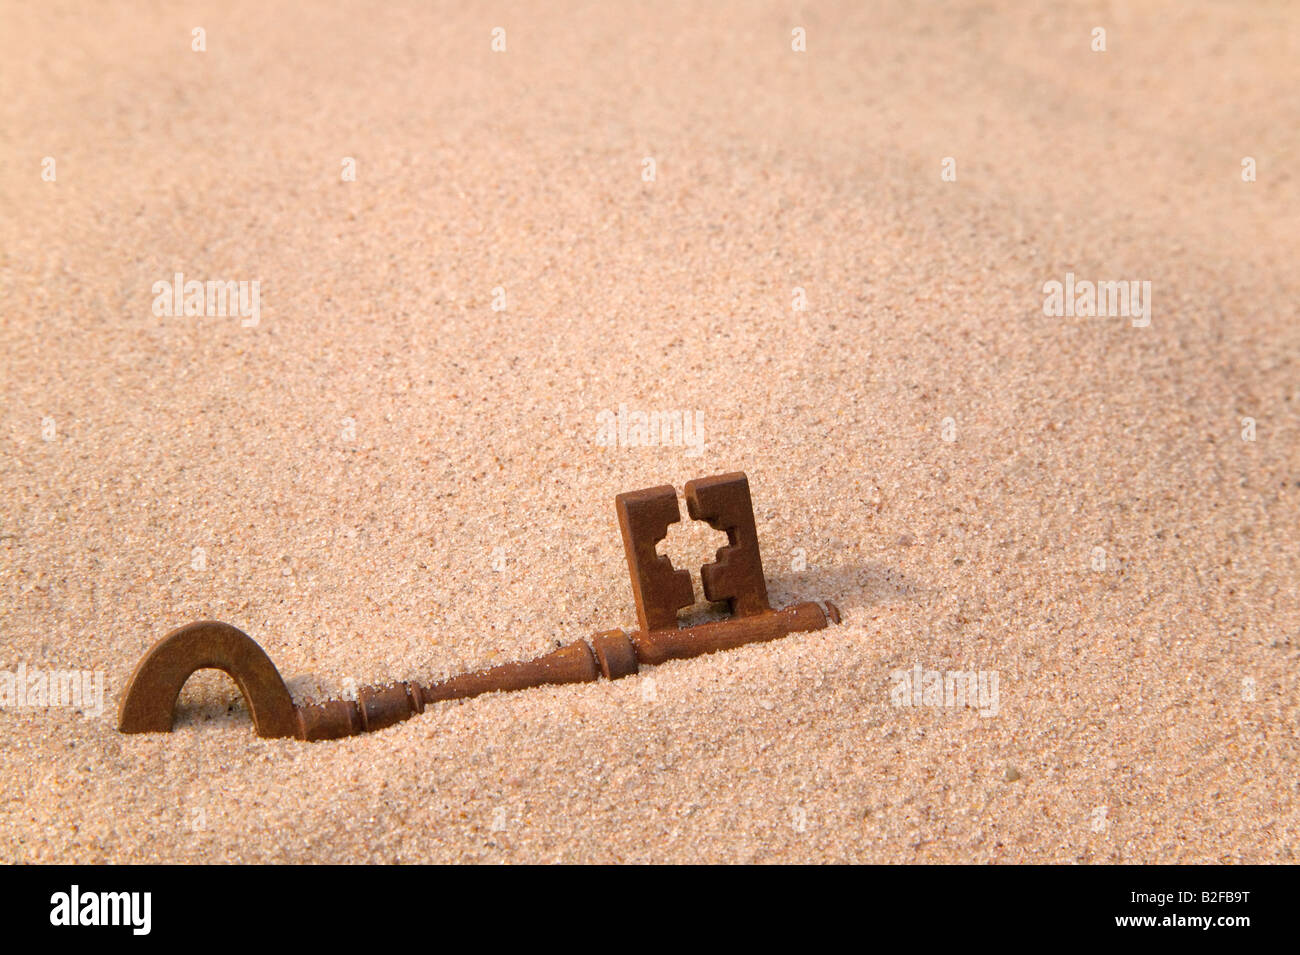 A rusty old key part buried in sand - Stock Image